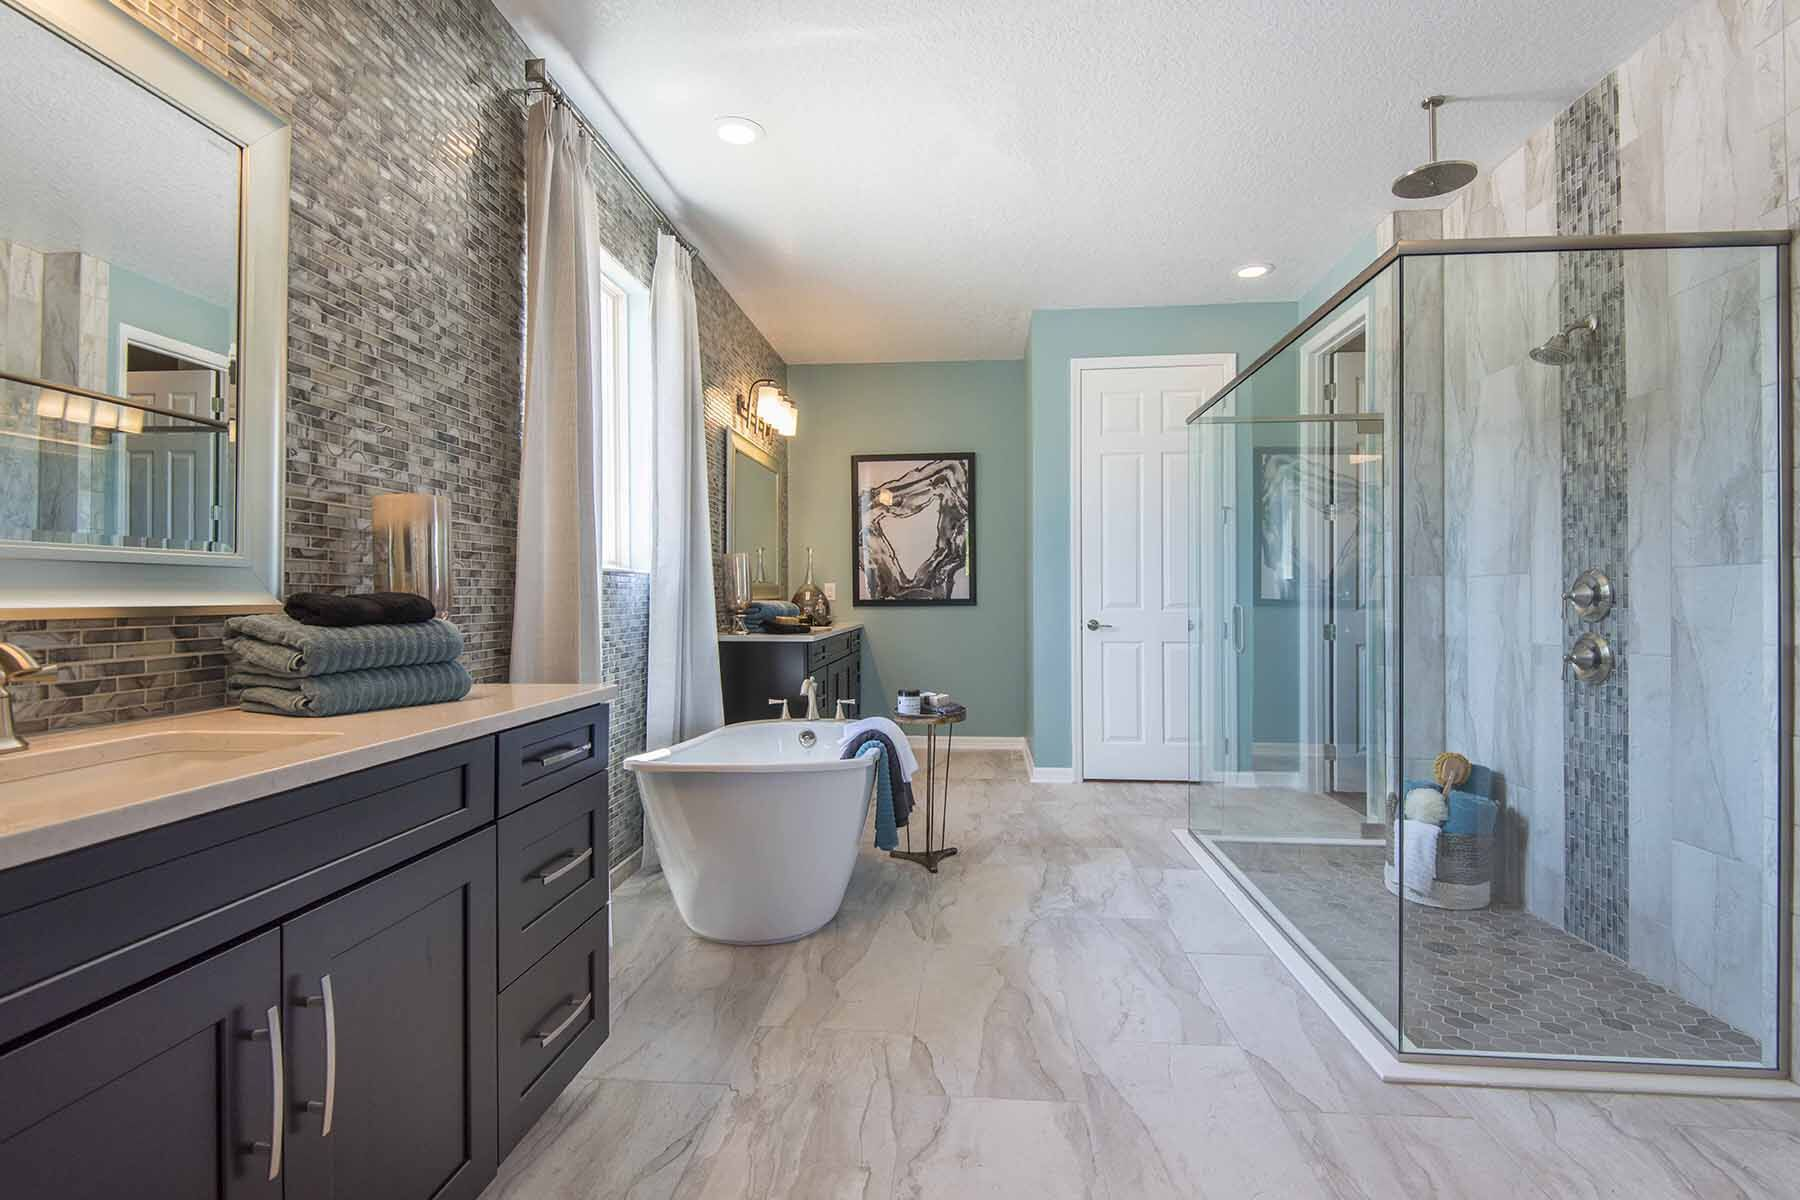 Bathroom featured in the Tradewinds Fl By M/I Homes in Orlando, FL